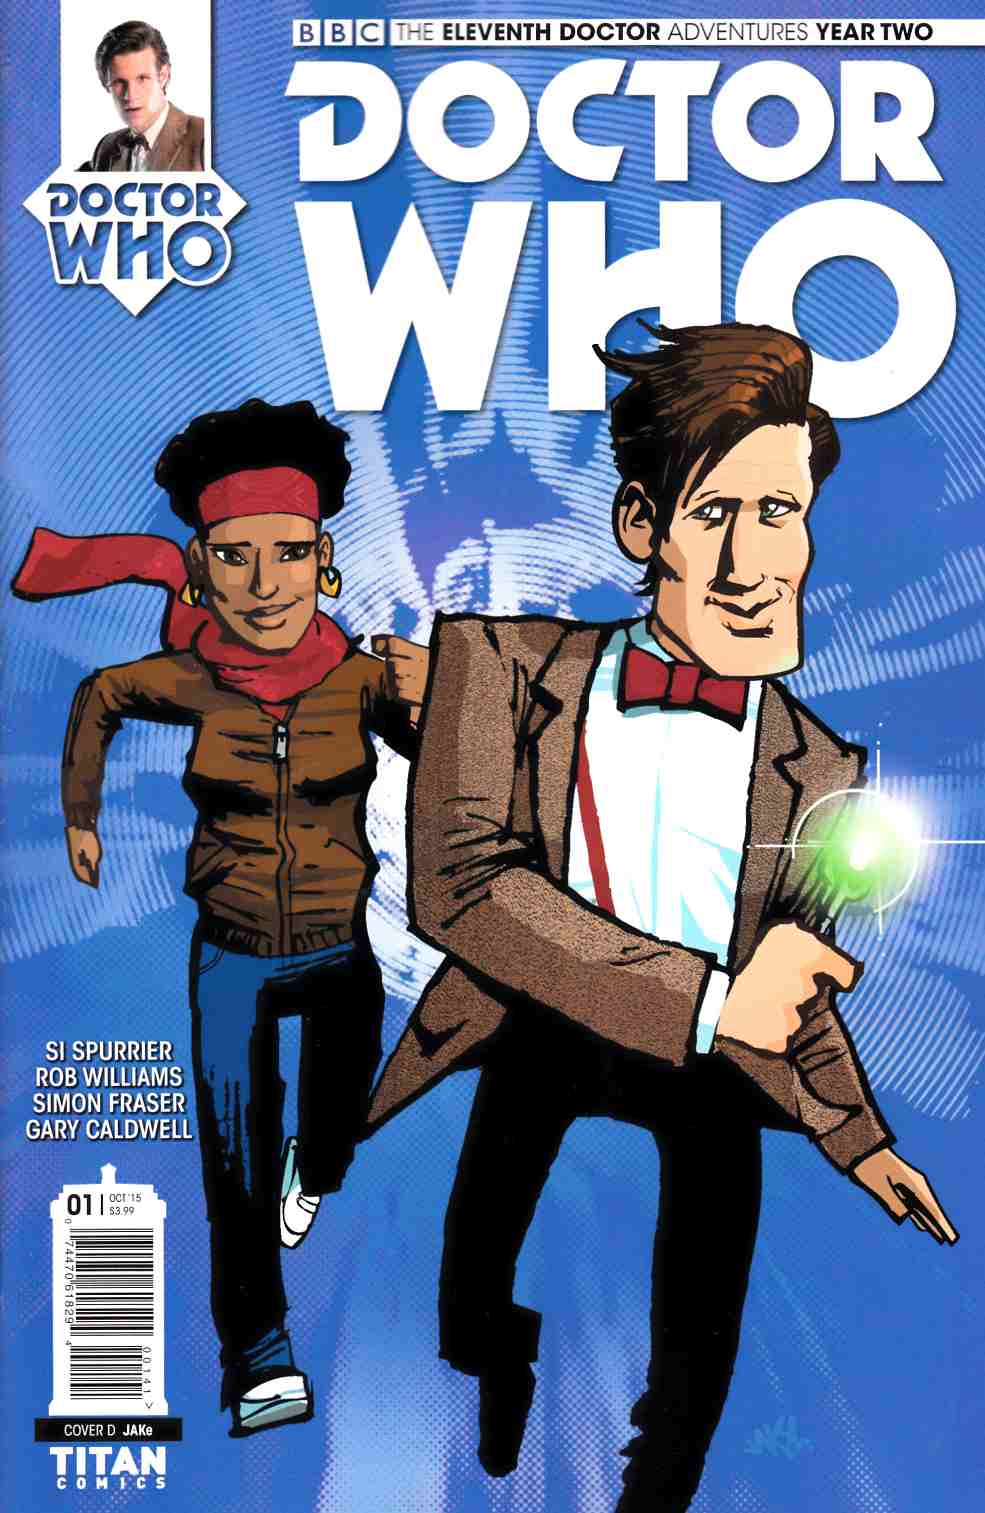 Doctor Who 11th Doctor Year 2 #1 Jake Variant Cover [Titan Comic] THUMBNAIL